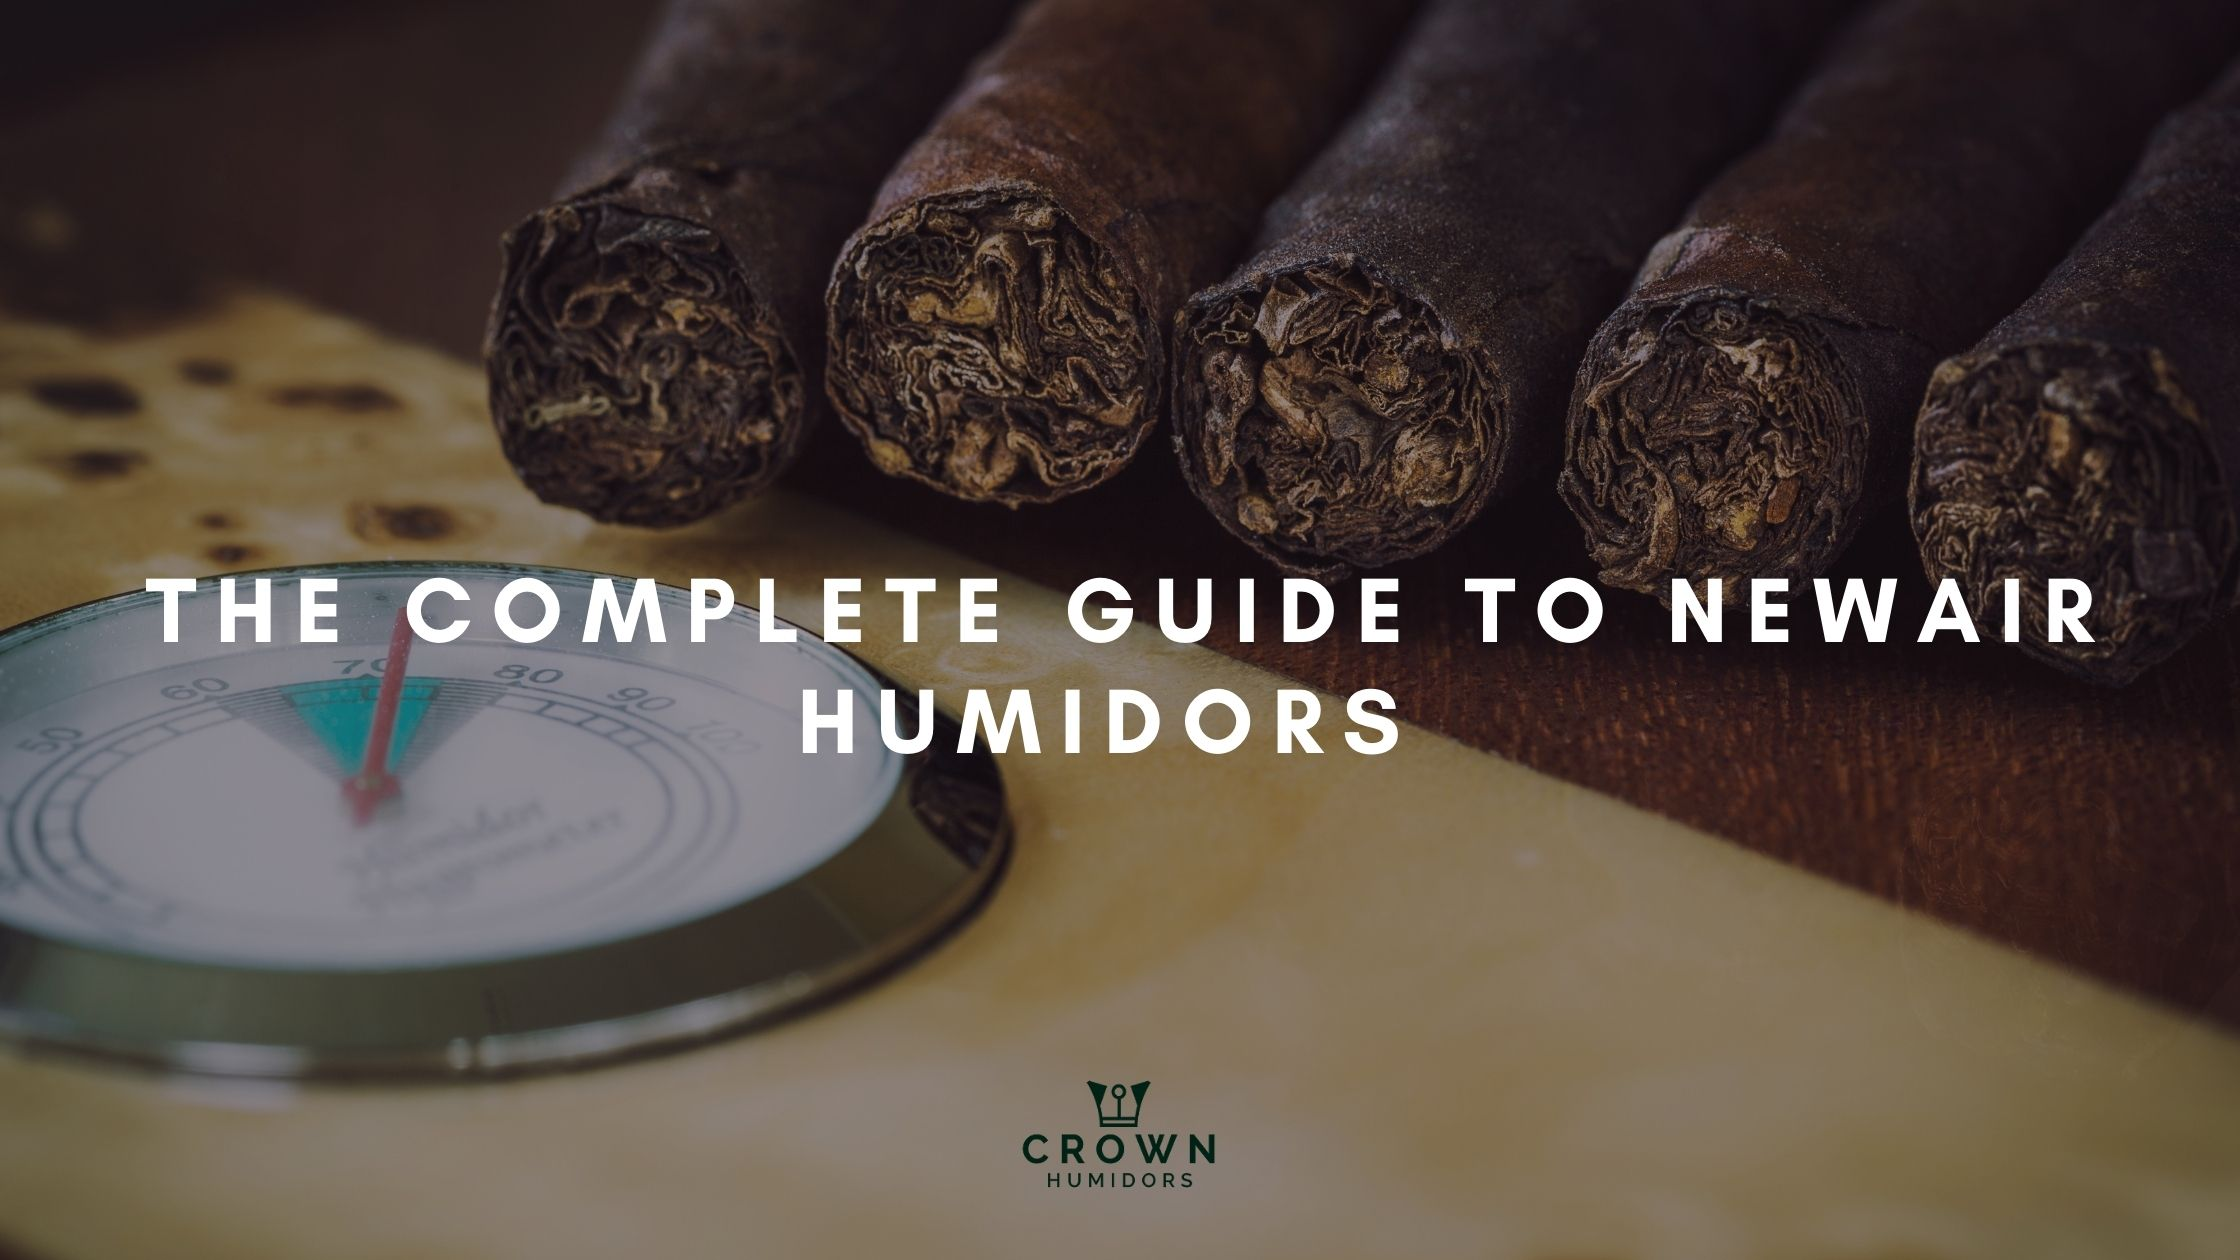 THE COMPLETE GUIDE TO NEWAIR HUMIDOR